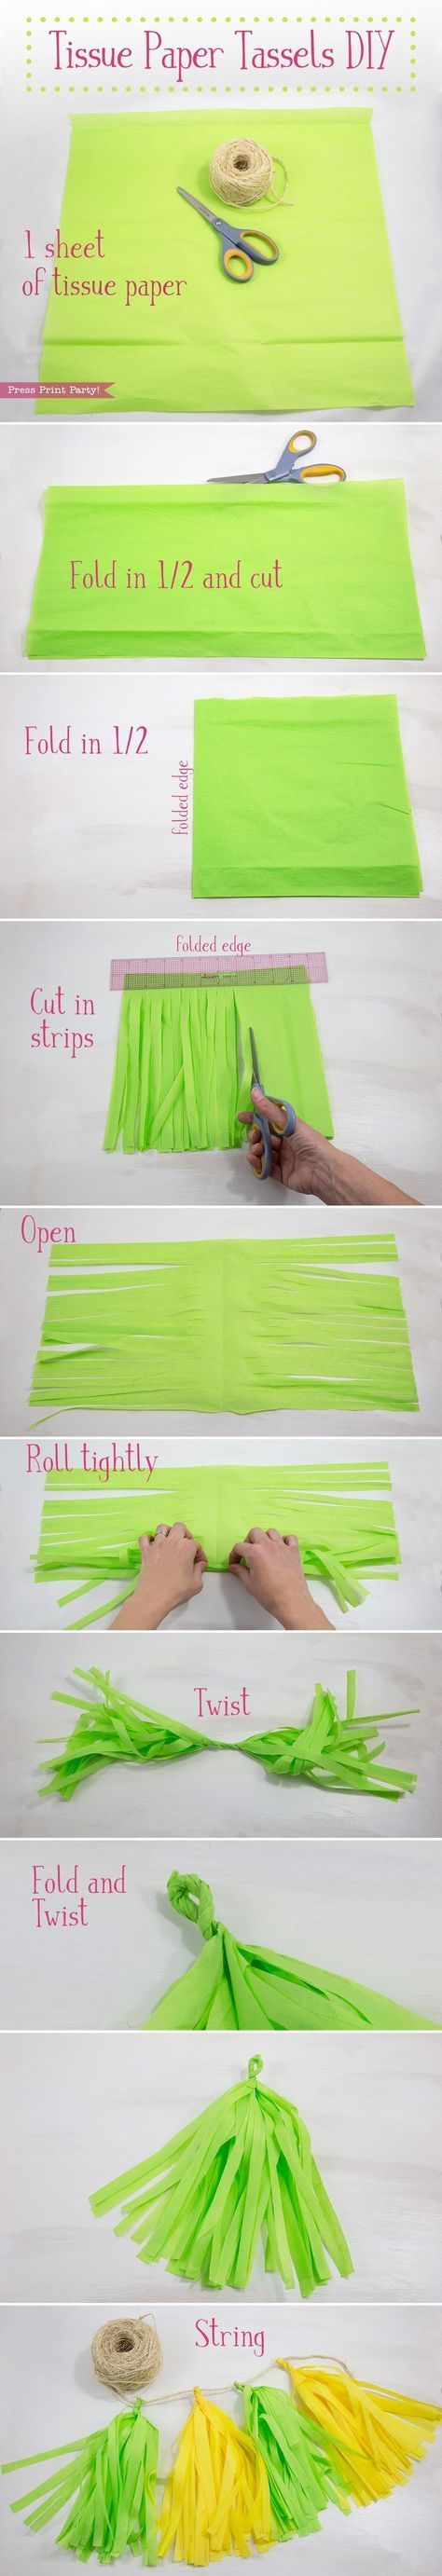 Learn how to make tissue paper tassels and garlands in any color to match your party theme. They're cheap, super festive, and easy for anyone to help make. How to Make Tissue Paper Tassels. Easy Tutorial by Press Print Party! http://www.pressprintparty.com/diy/party-decorations/tissue-paper-tassels-garlands/